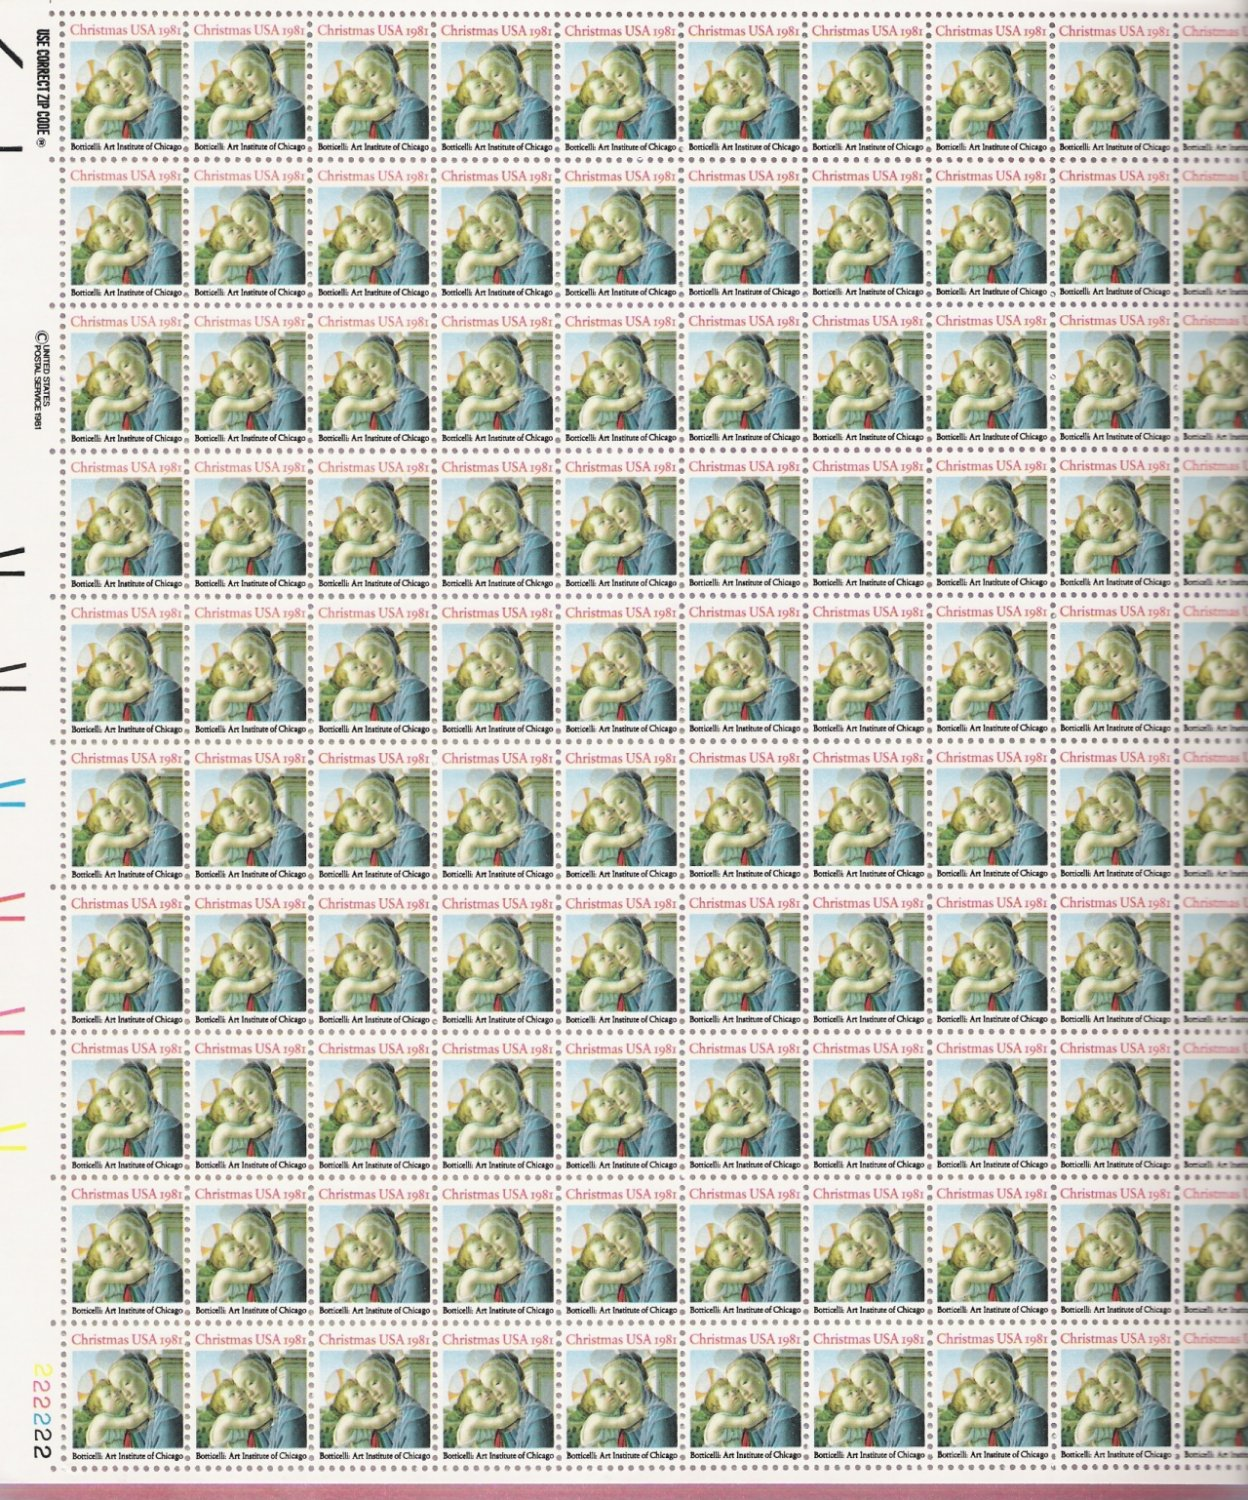 US Scott 1939 - Sheet of 100 - Christmas 1981 - religious - Mint Never Hinged